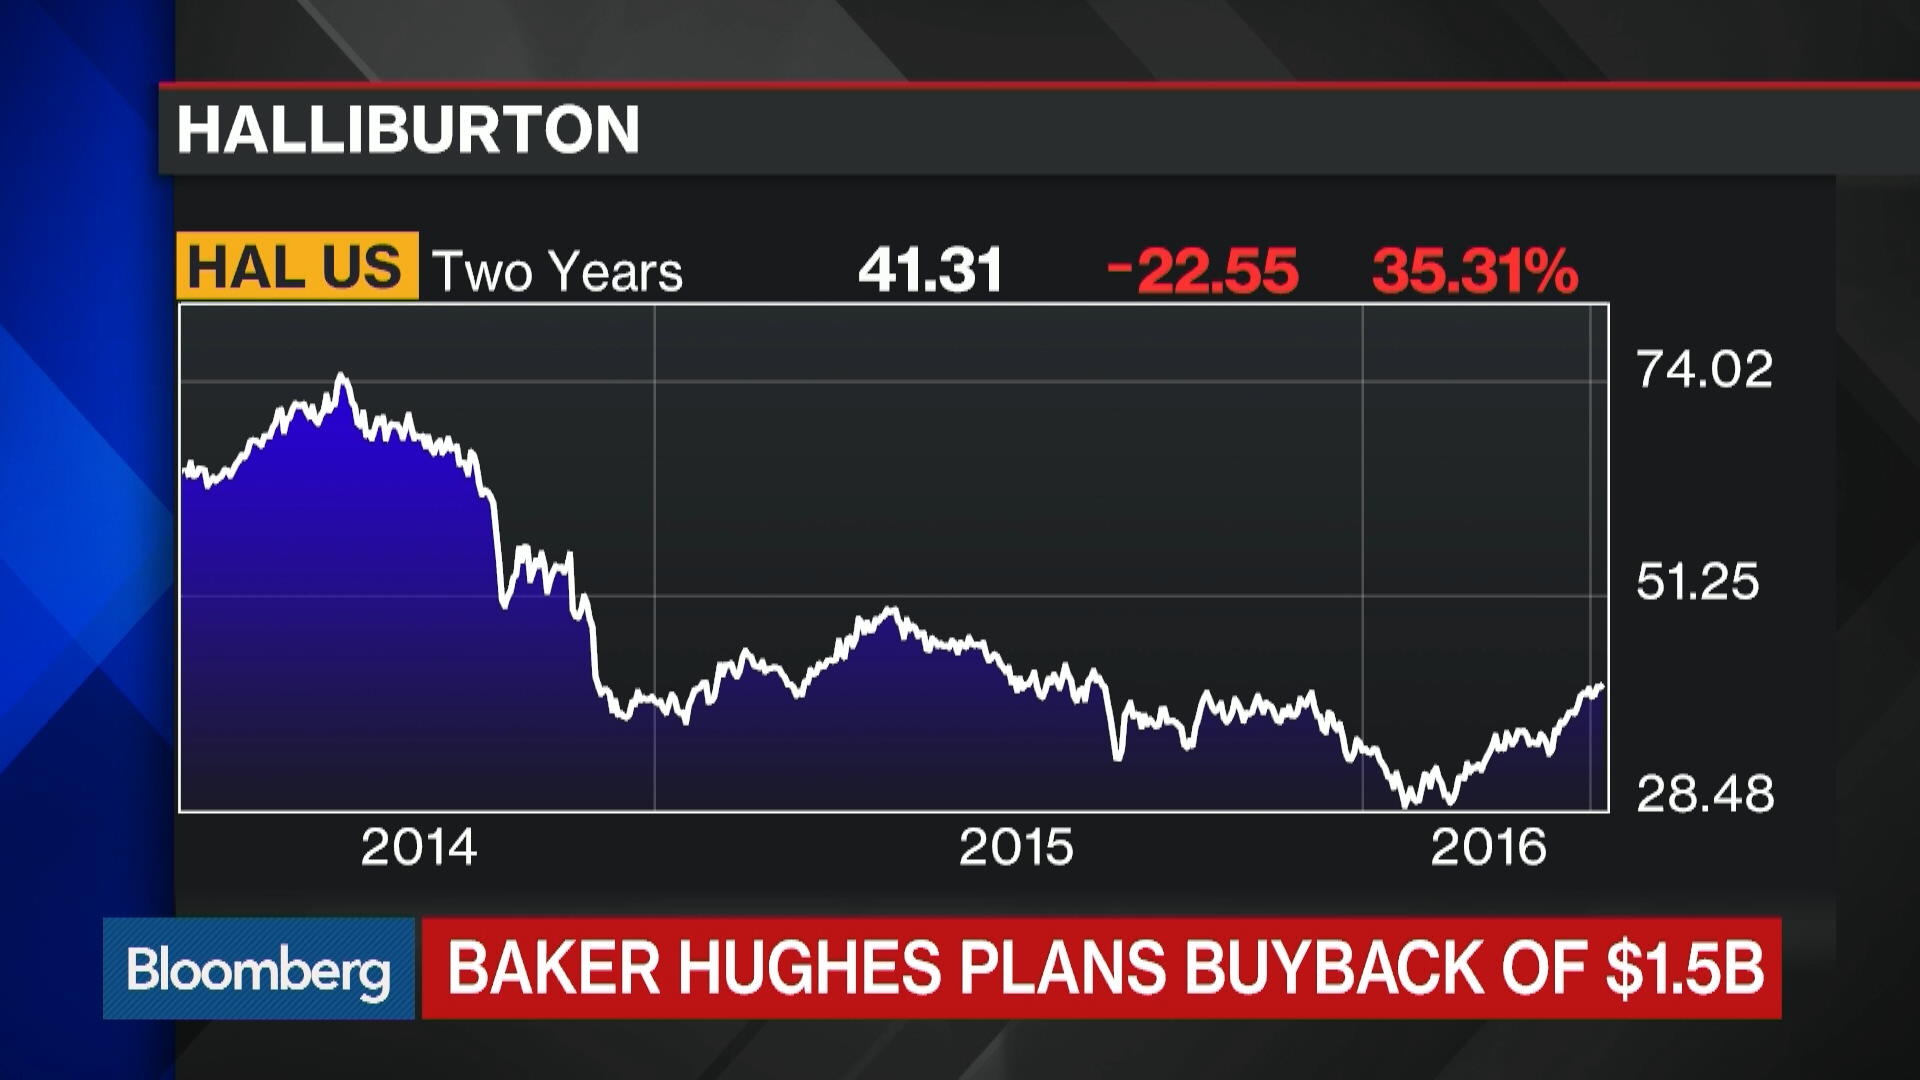 Baker Hughes Looks Past Halliburton Deal With Buyback Bloomberg